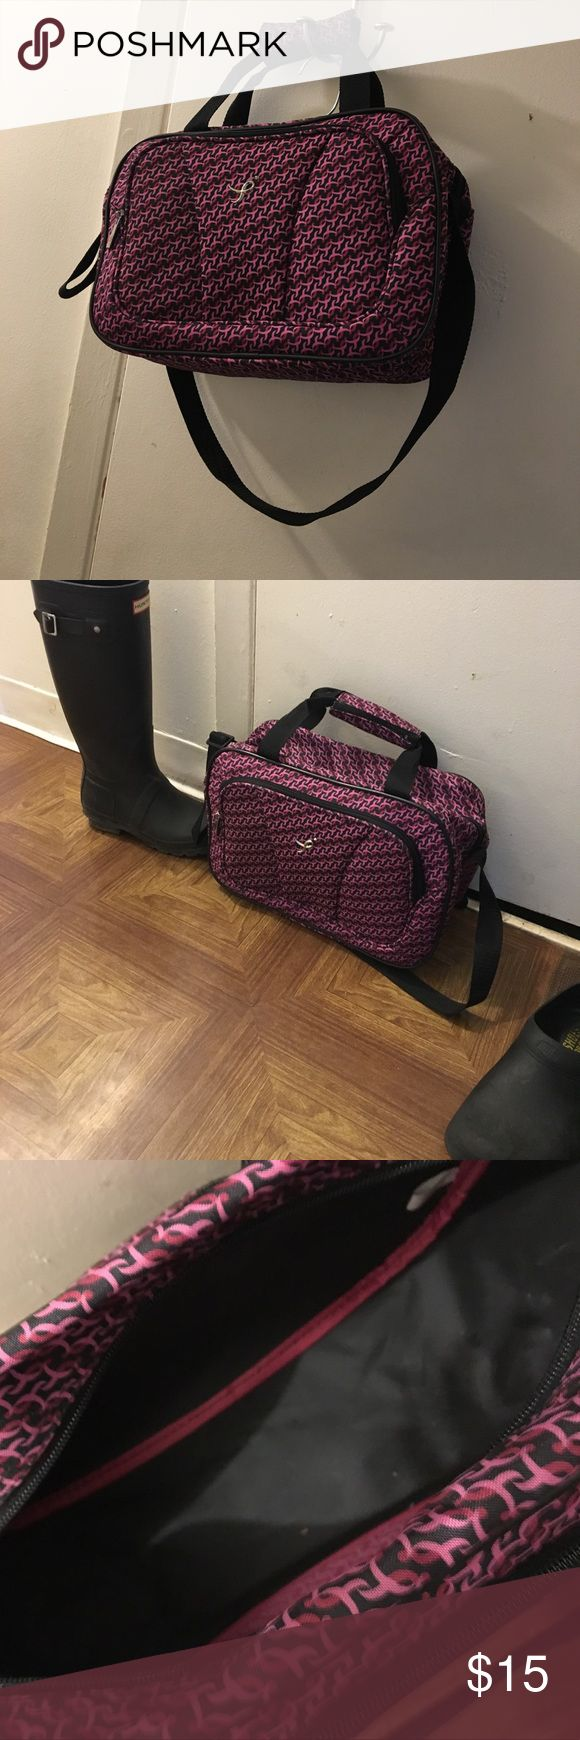 Susan G Komen Carry on Bag new Use it as a gym bag! Carry on bag Trunk bag susan g komen Bags Travel Bags